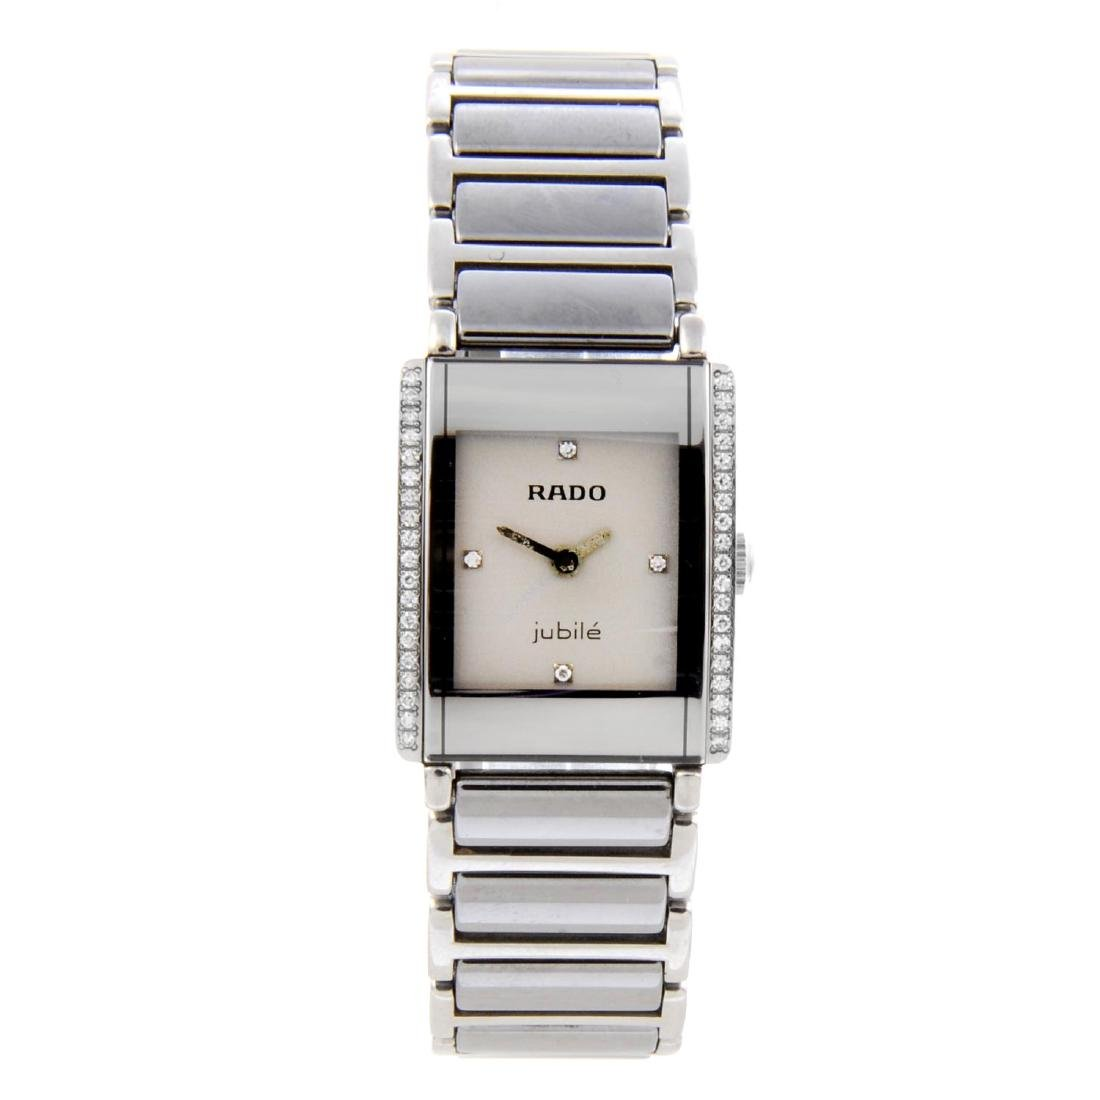 RADO - a lady's DiaStar bracelet watch. Factory diamond